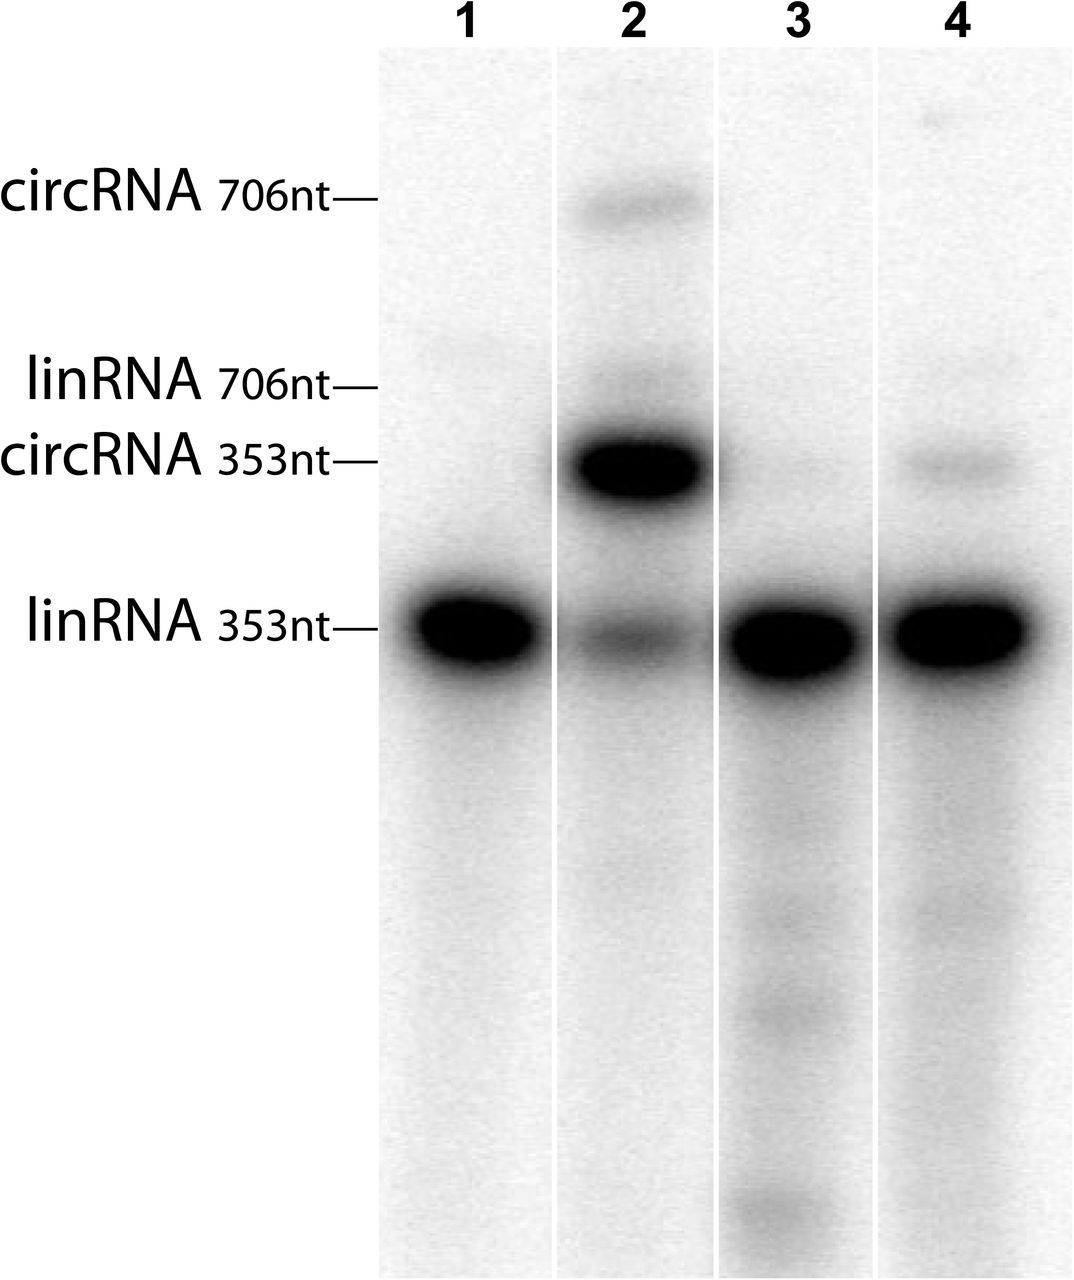 Circularization of Mexican axolotl self-cleaved <t>retrozyme</t> RNA. Purified linear monomeric RNA resulting from double self-cleavage of DRtz353 (see Figure 4C ) was run directly in a denaturing gel (lane 1), after 1h incubation with <t>RtcB</t> ligase in its corresponding buffer (lane 2), in RtcB buffer without protein ligase (lane 3), and in 50 mM Mg 2+ buffer (lane 4). Circular RNAs can be readily detected in lane 2 (up to 80% circularization for the 350 nt monomer) and lane 4 (3% self-circularization for the 350 nt monomer). Minor fractions of linear and circular dimeric RNAs are also indicated (lane 2).